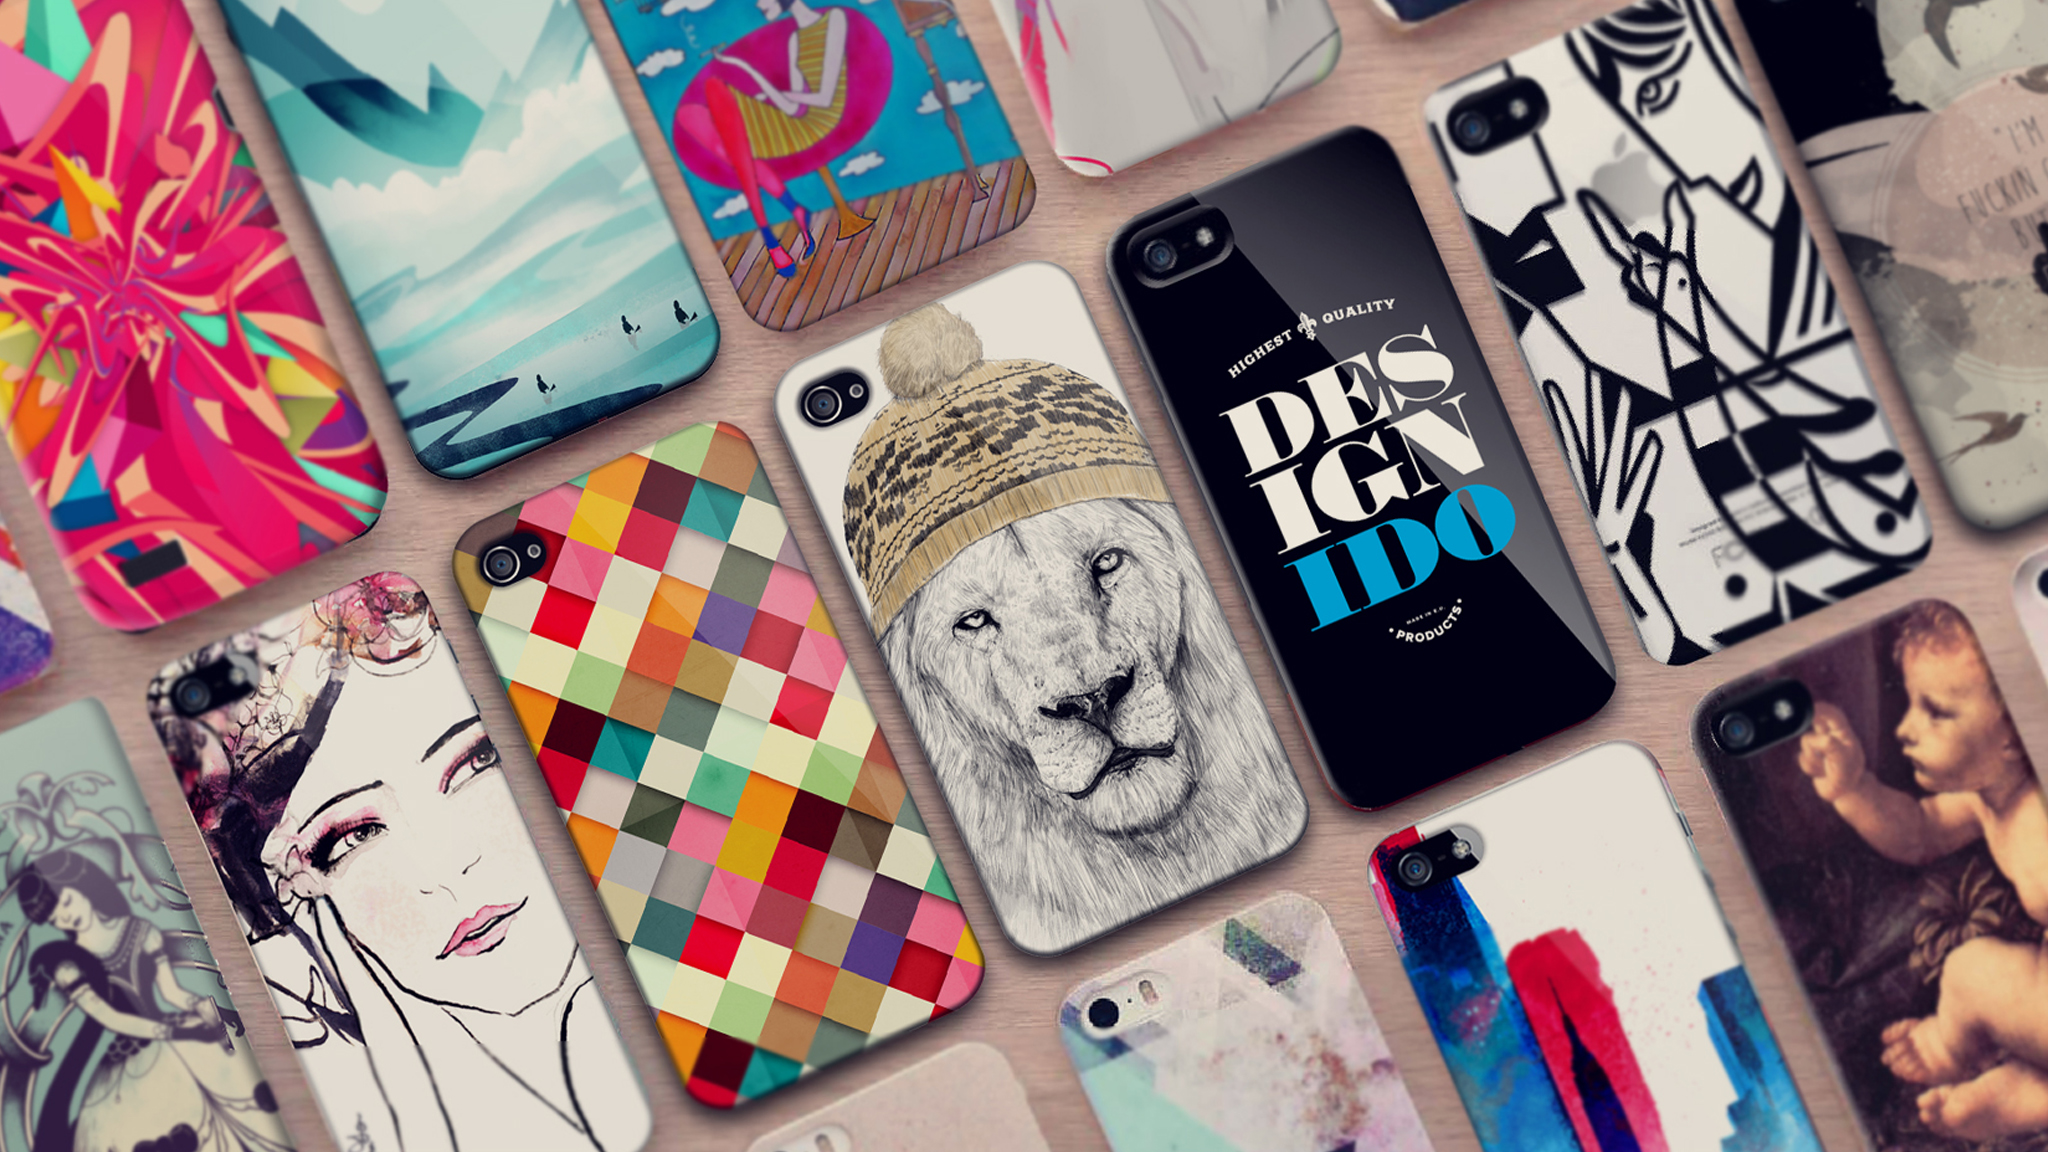 Egyedi Design-I-Do iPad és iPhone tokok